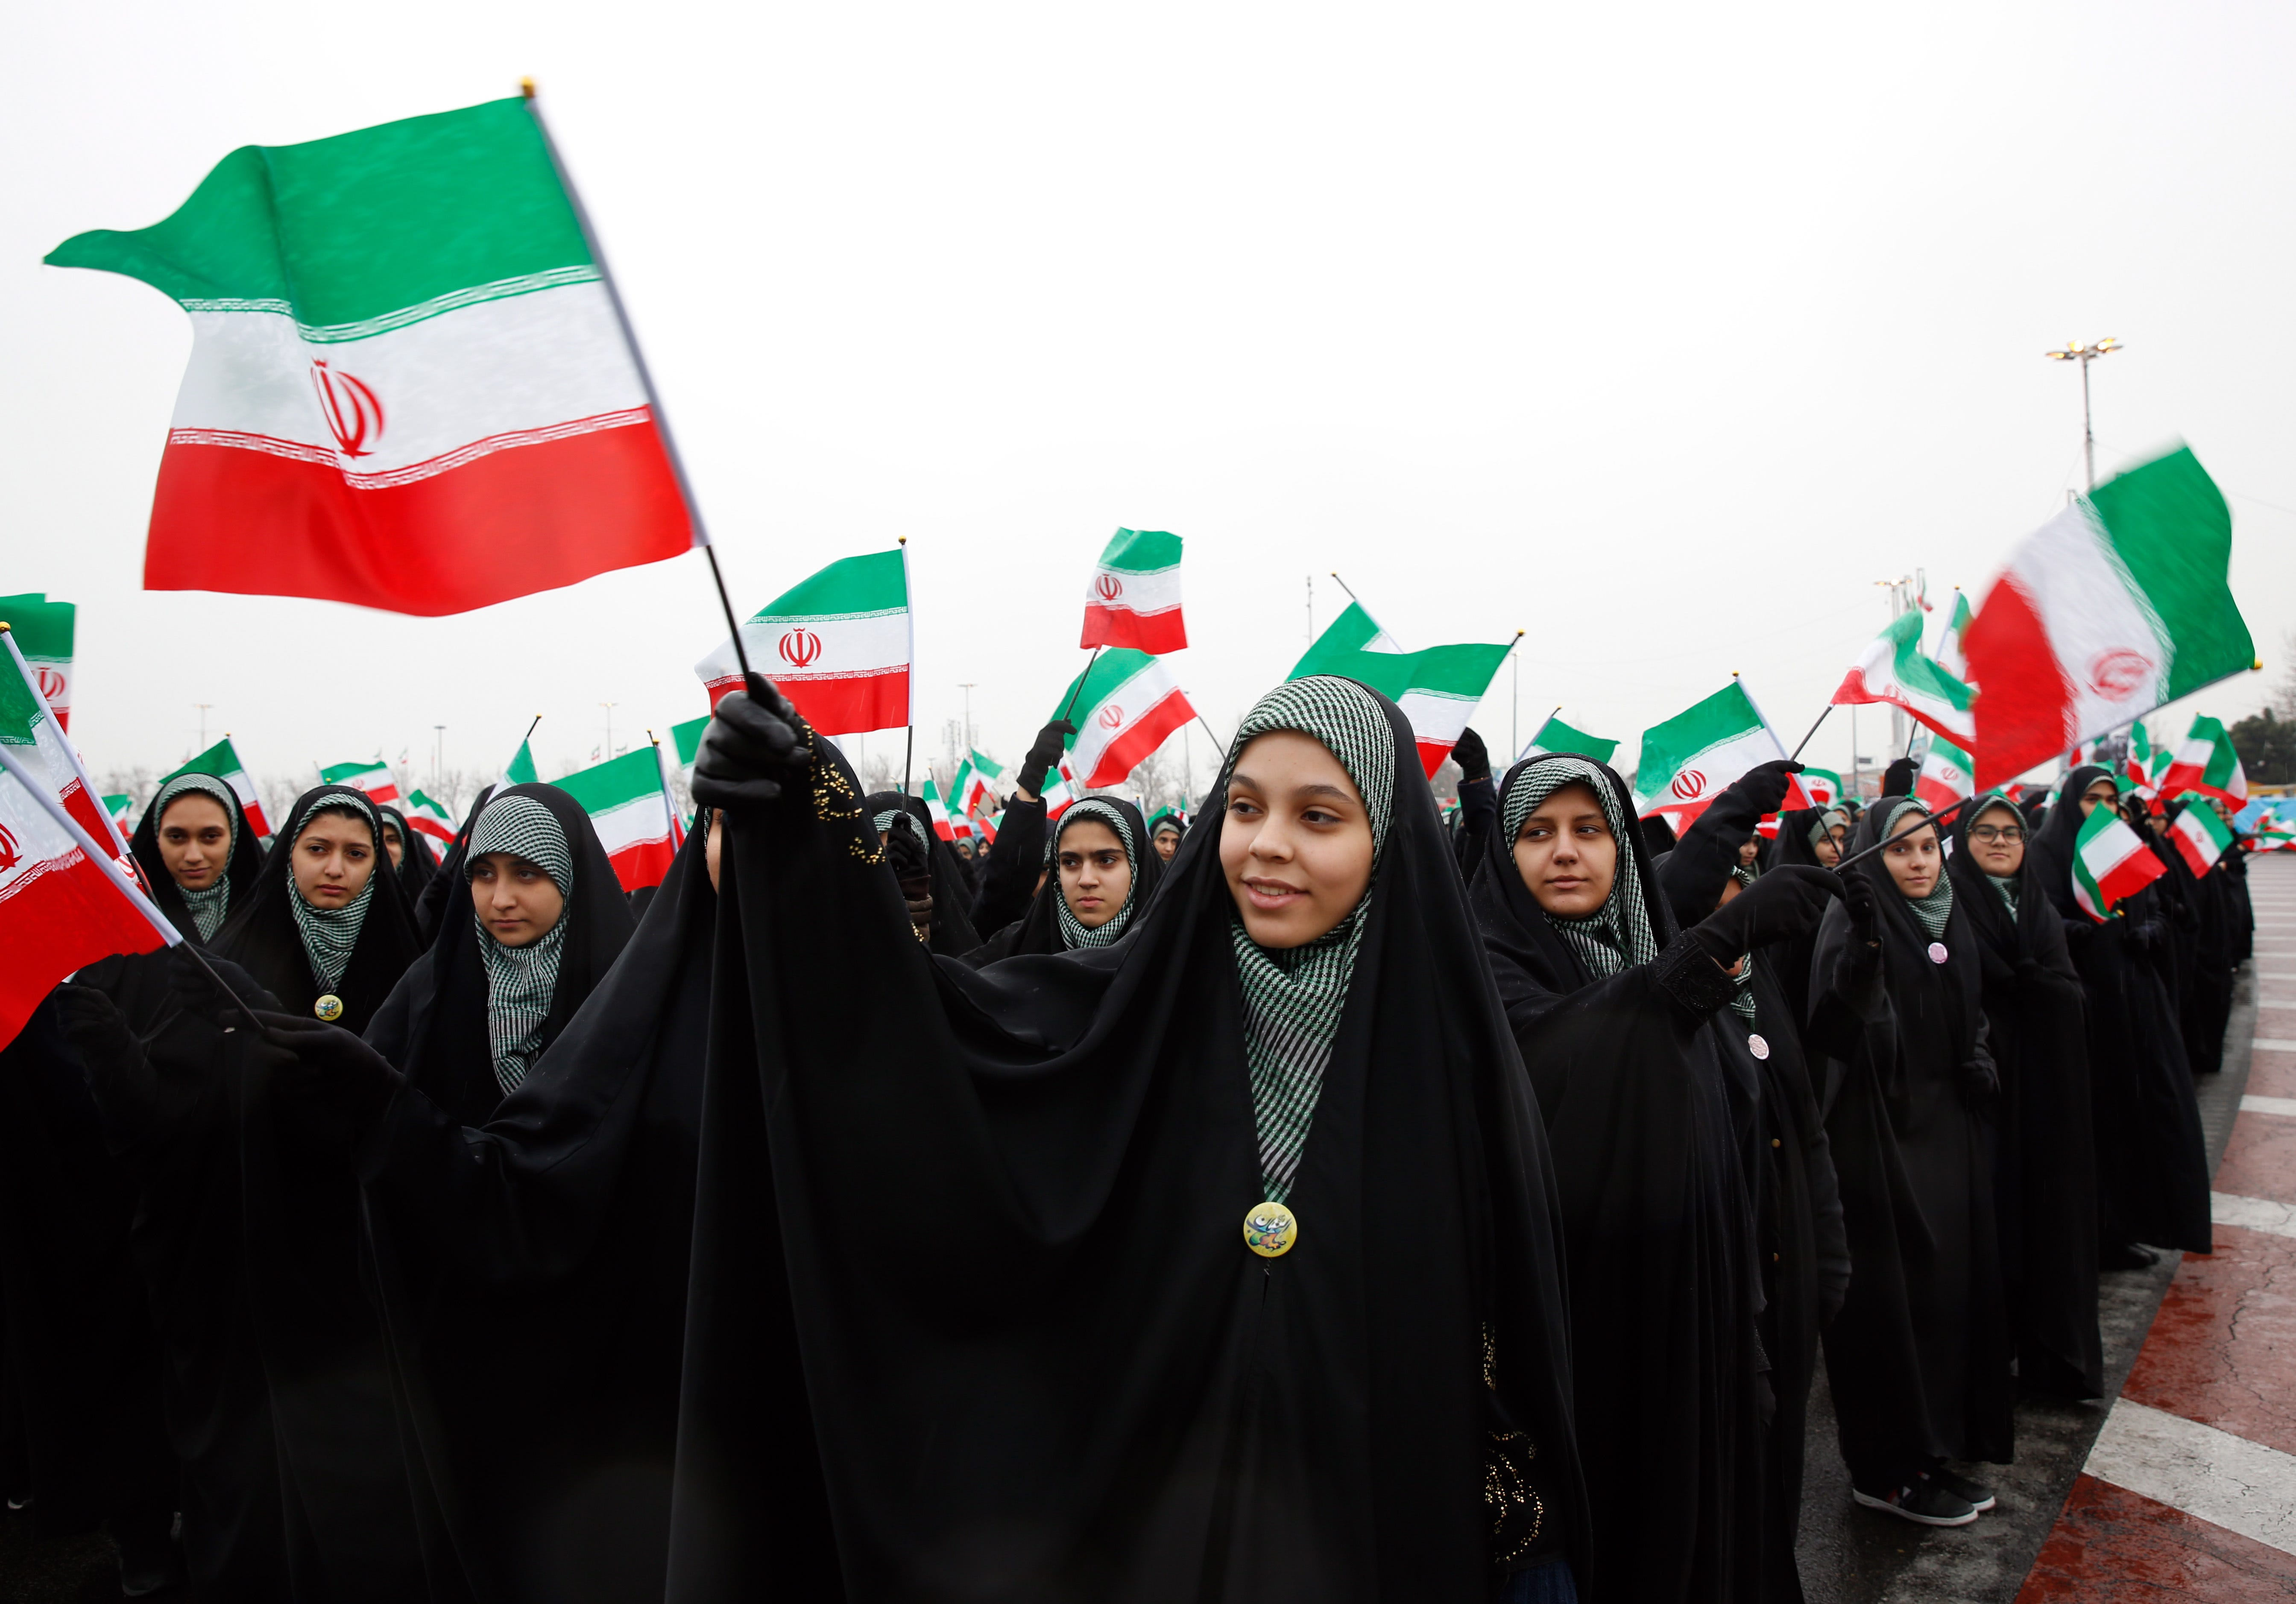 As Iran's Islamic Republic turns 40, Michelle Obama's 'Becoming' hits bestseller list